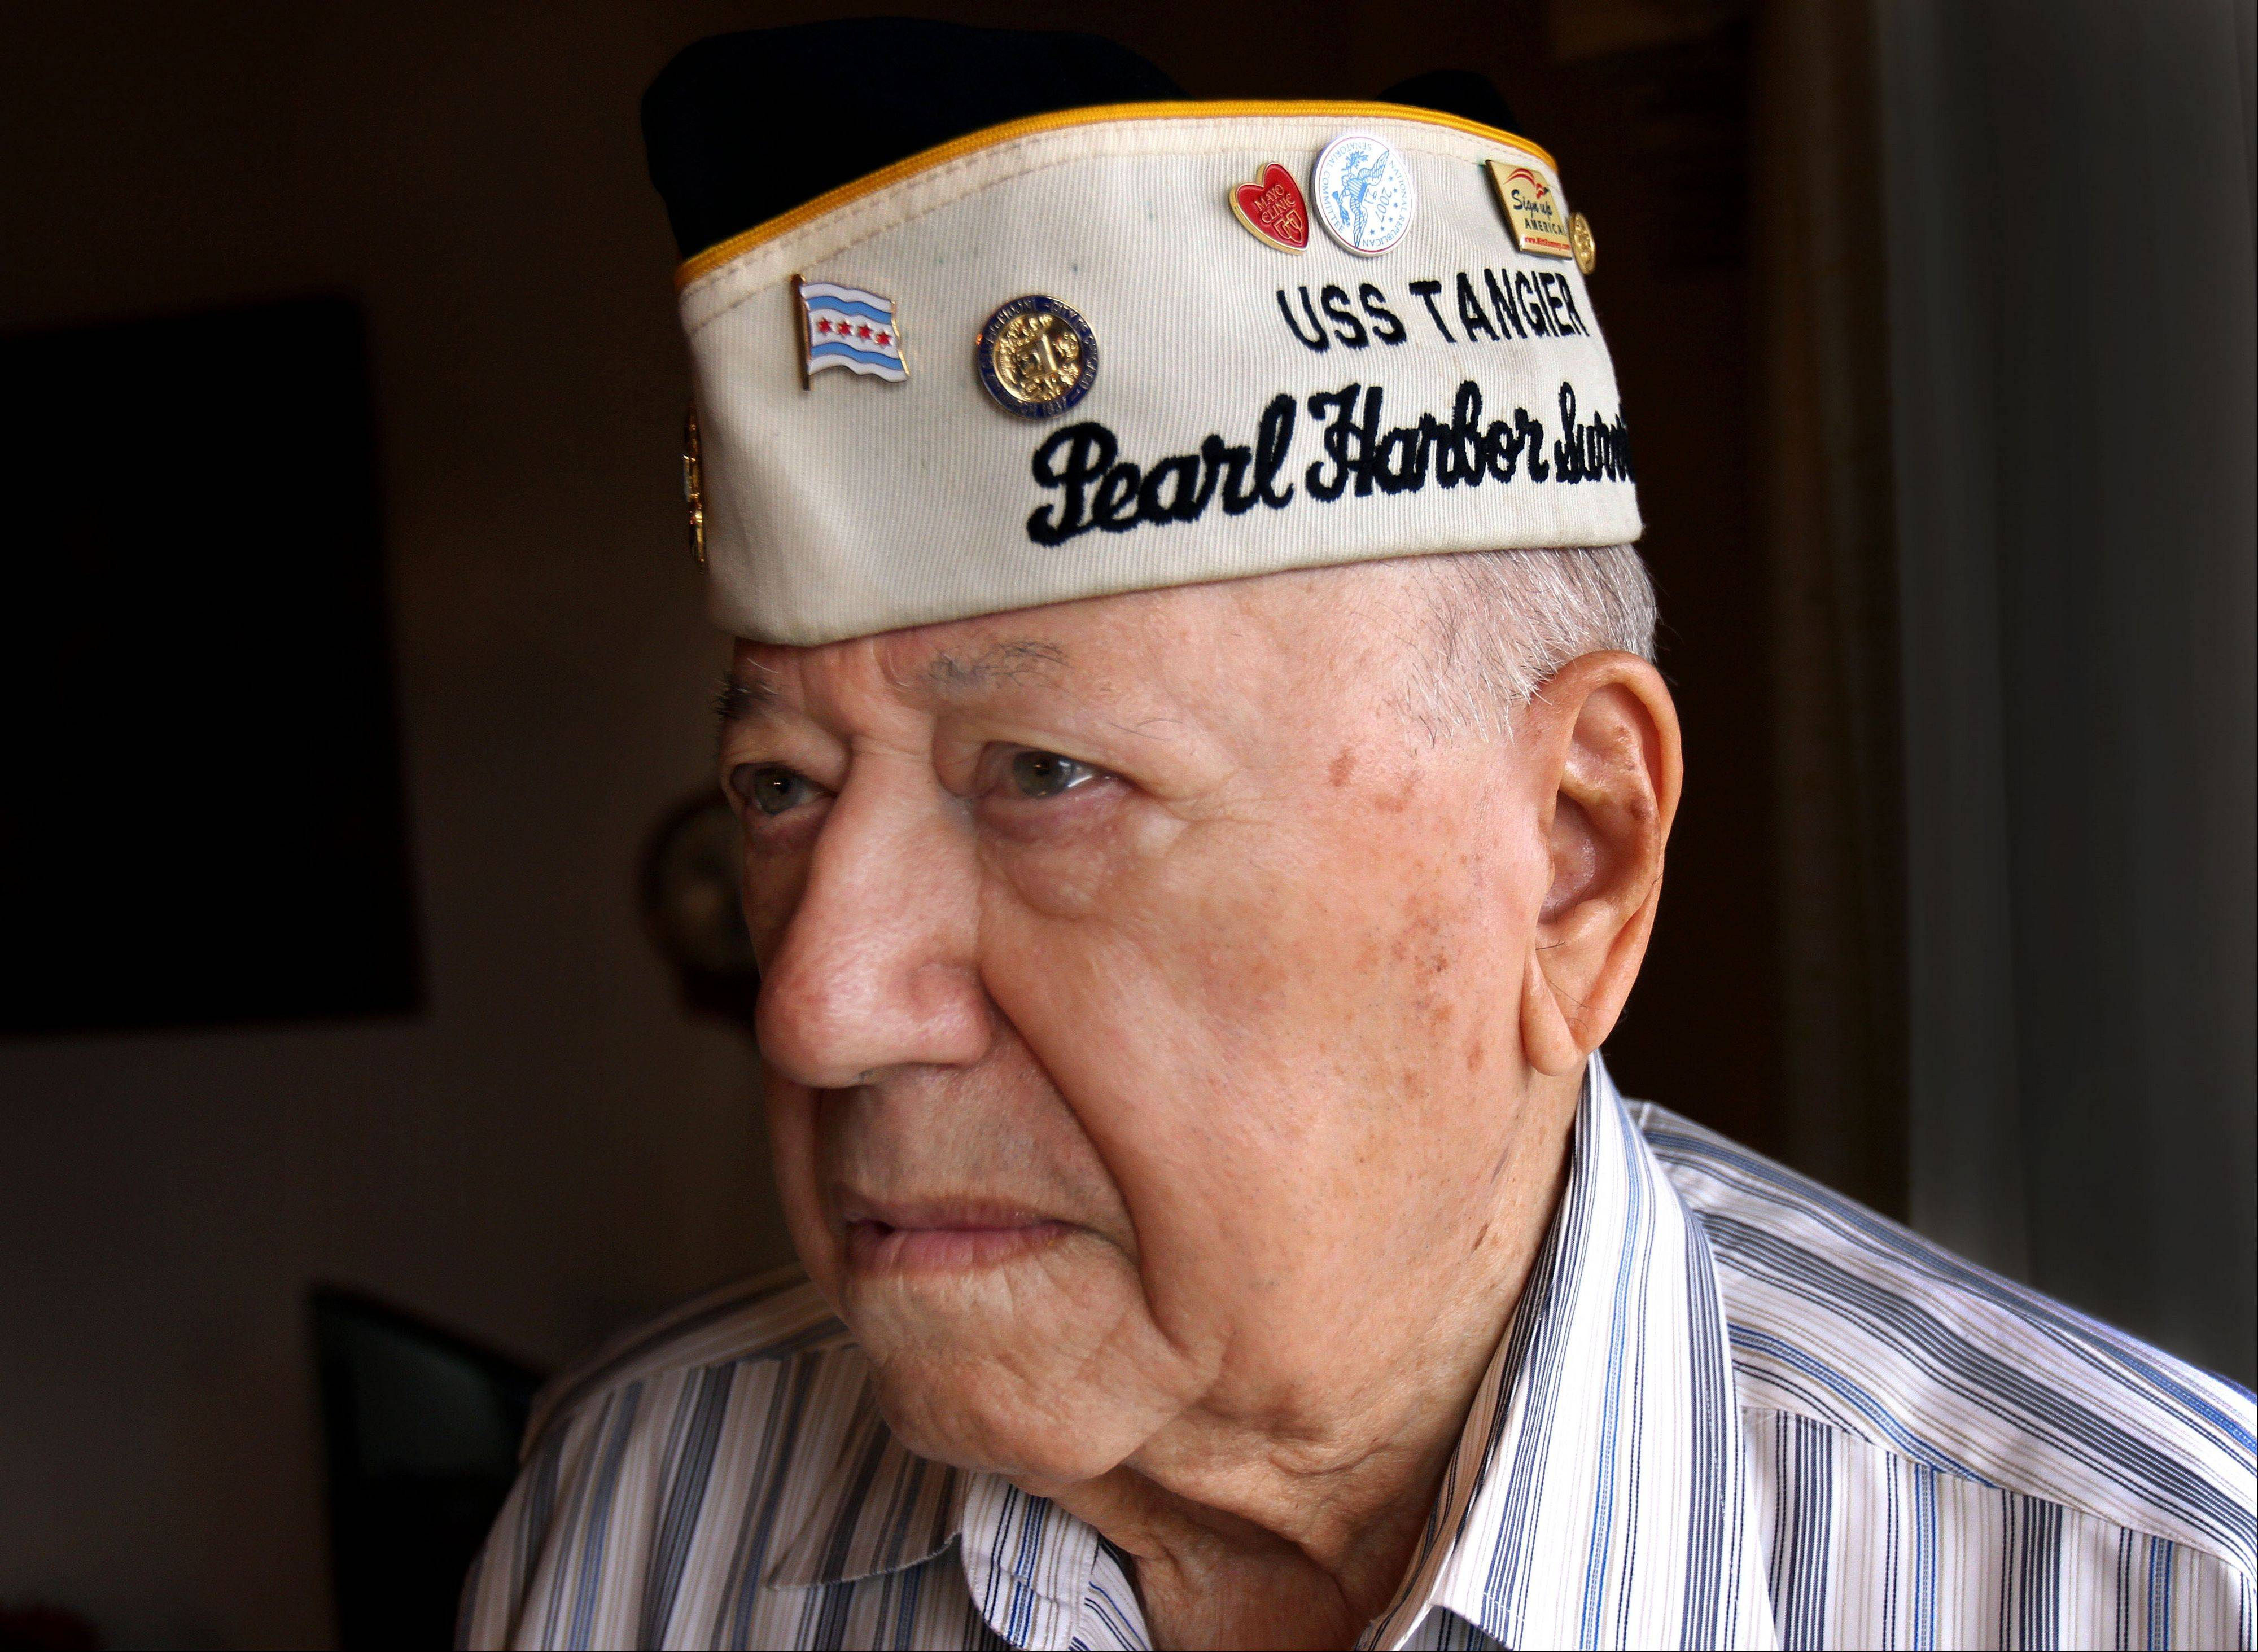 Pearl Harbor survivor worries kids aren't taught about infamous day